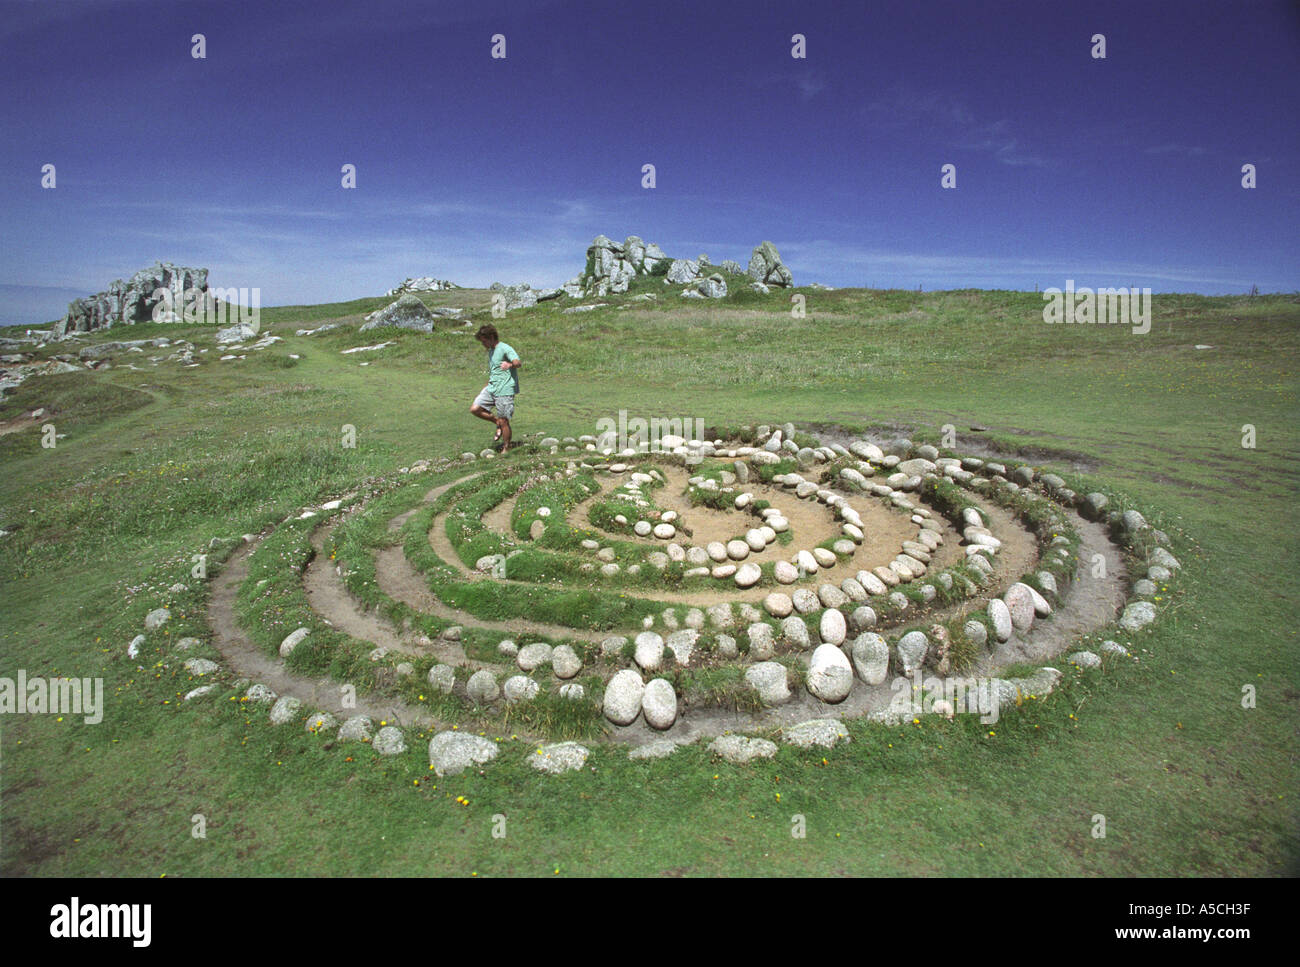 A walker steps through Troy Town Maze on the island of St Agnes Isles of Scilly built around 200 years ago - Stock Image